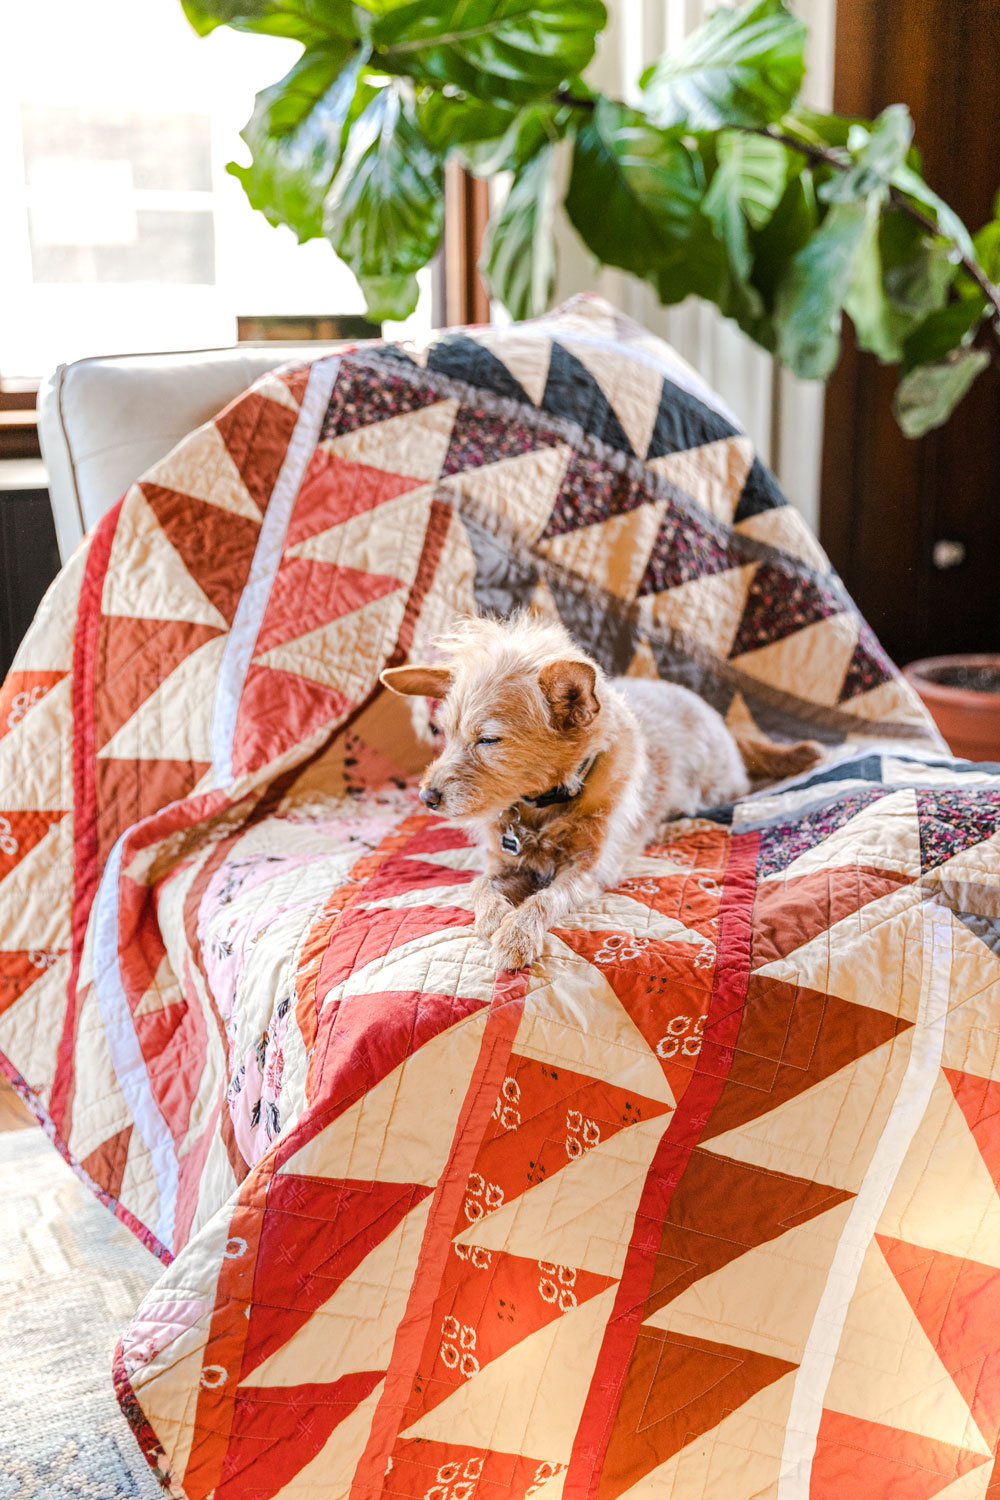 Join a fun sew along! It is easy to participate – all you need is the Gather quilt pattern so we make this quilt together! suzyquilts.com #quiltpattern #quiltdog